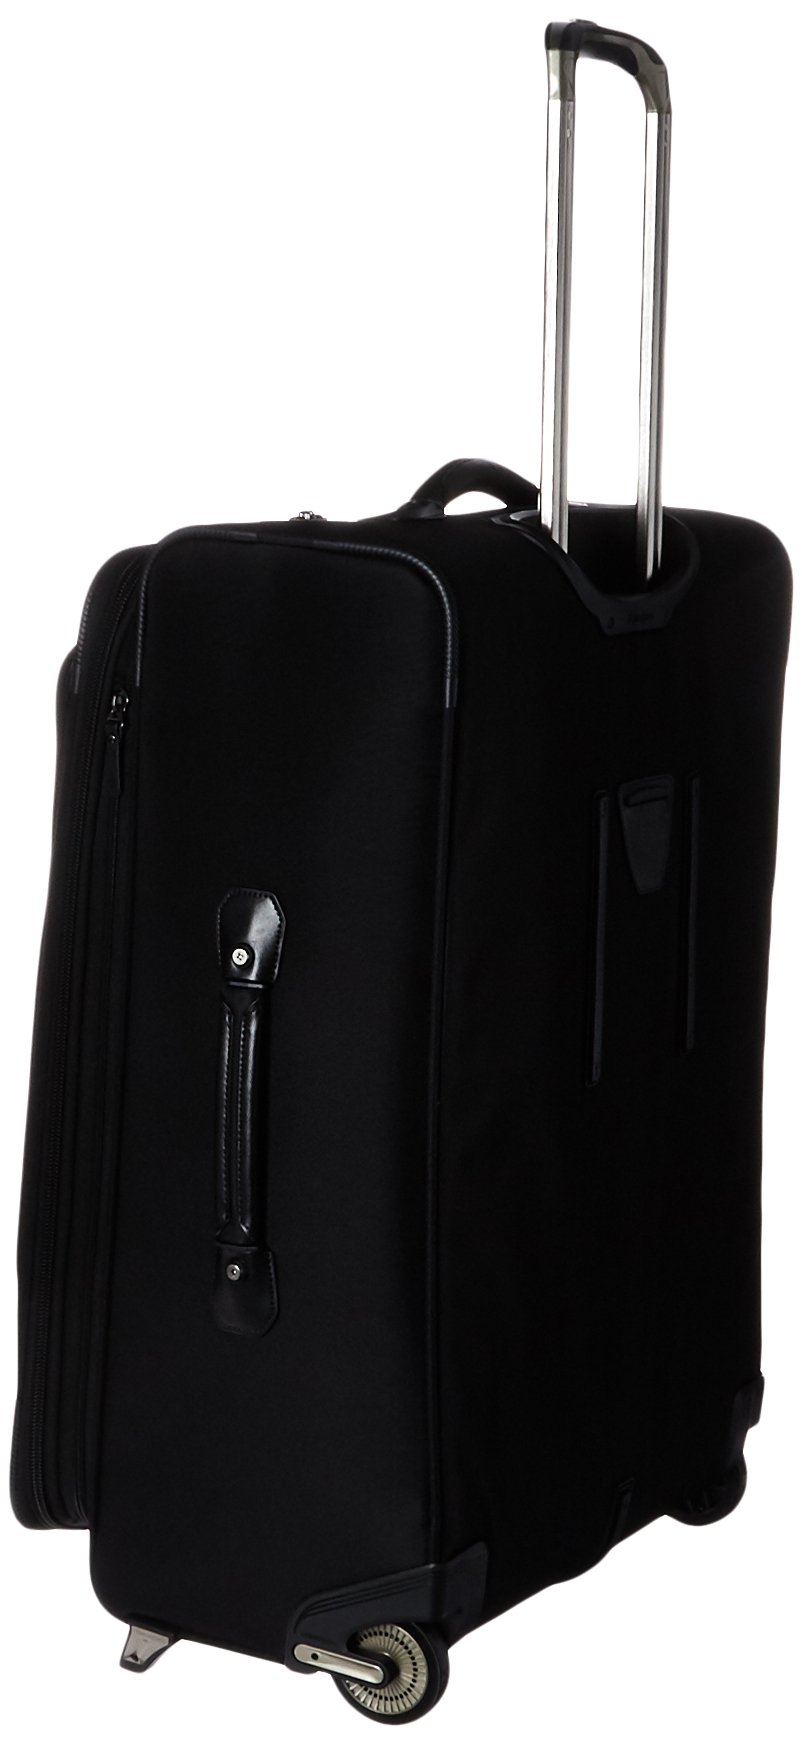 Travelpro Crew 11 Expandable Rollaboard Wheeled Suiter Suitcase, Black by Travelpro (Image #1)